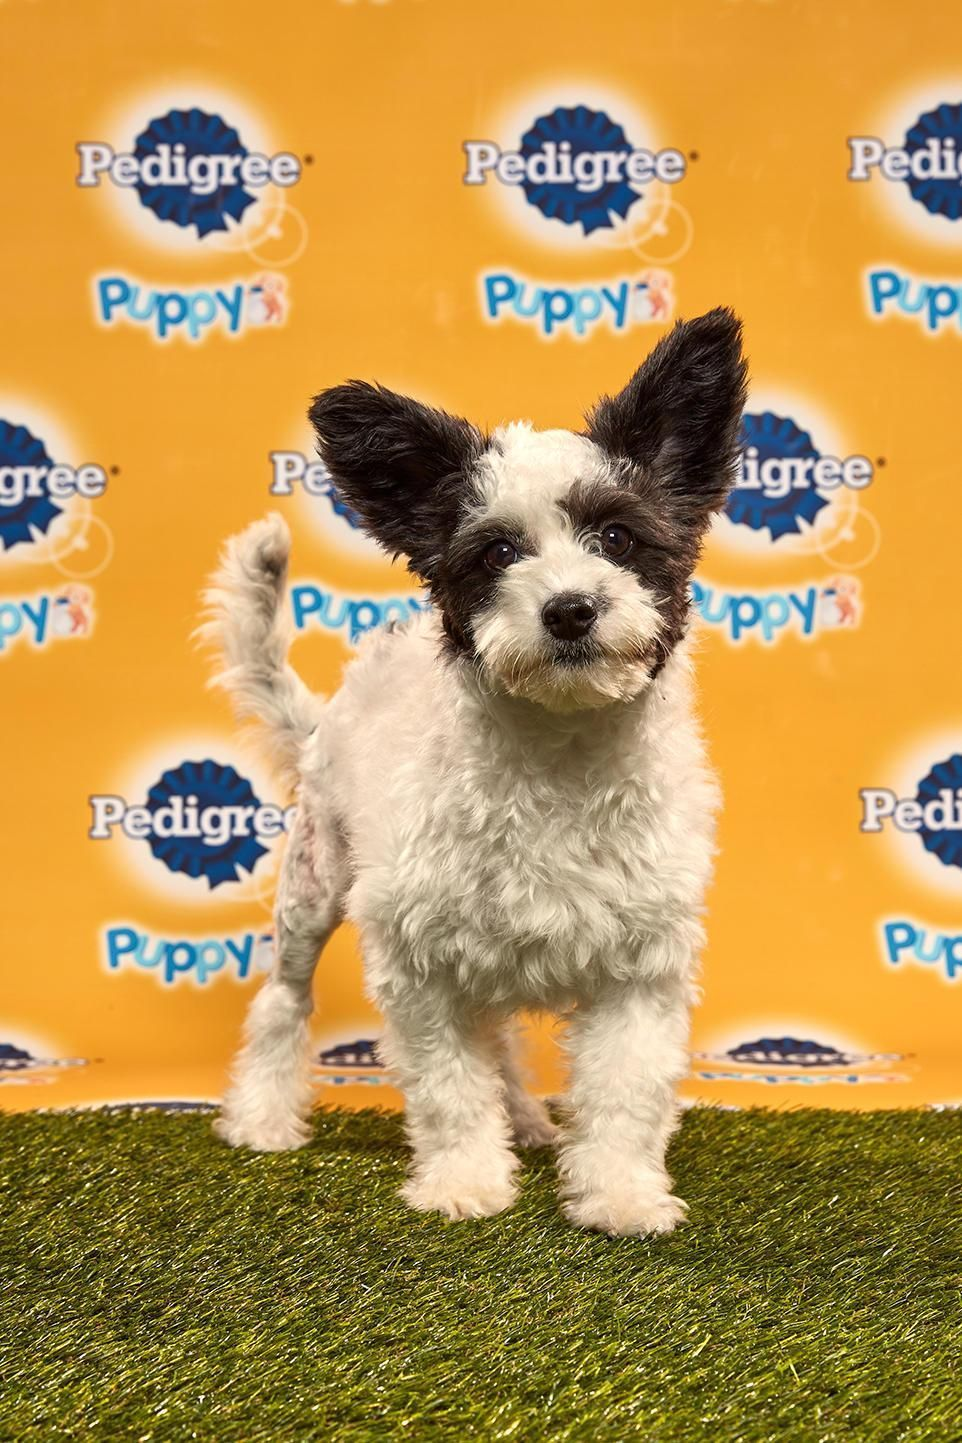 Puppy Bowl 2020 Photos Puppy Bowl 2020 Animal